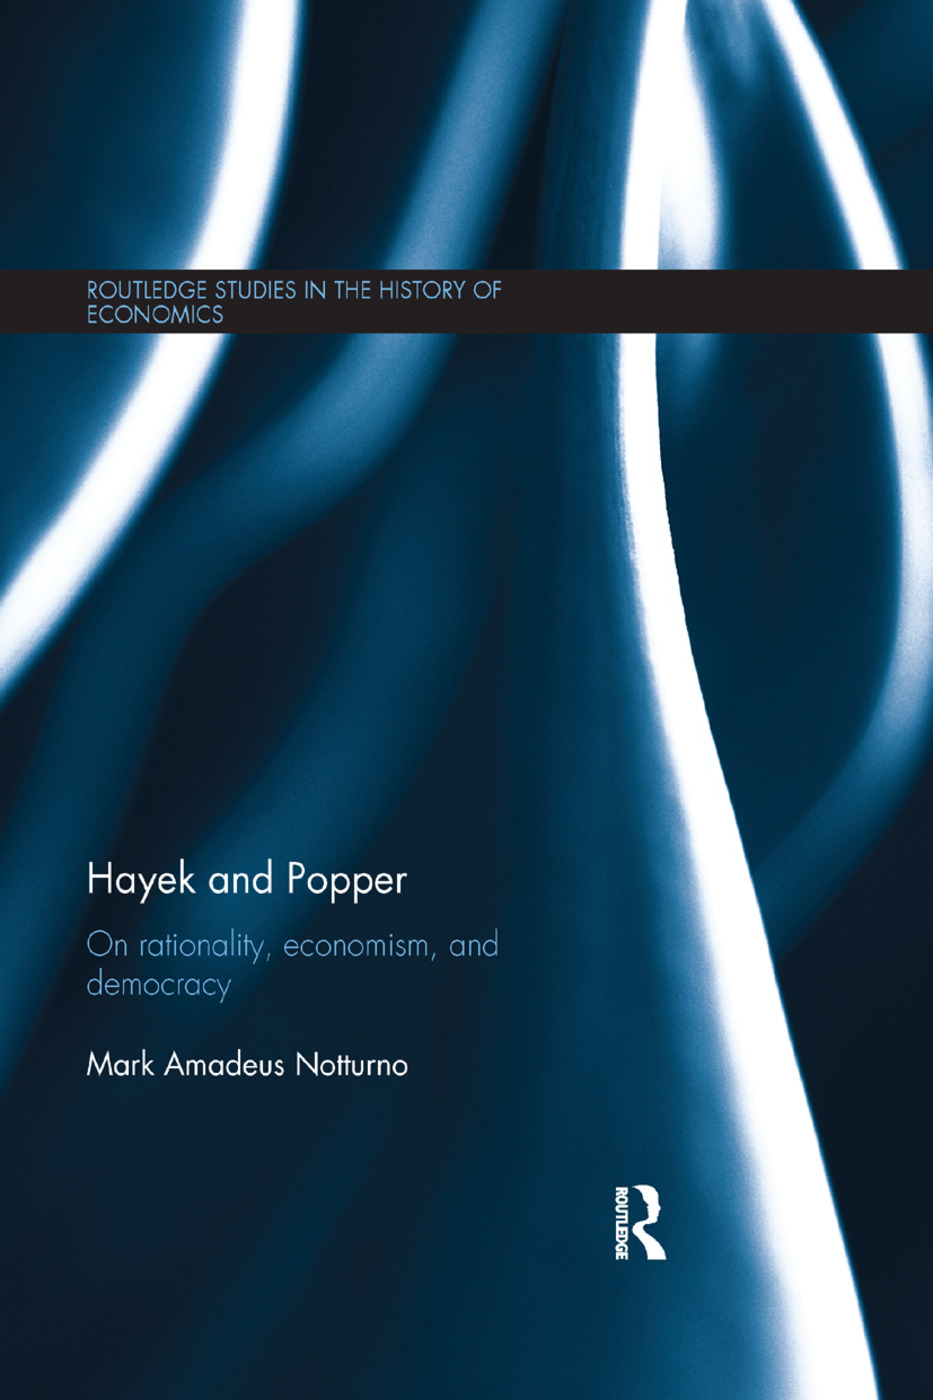 Hayek and Popper: On Rationality, Economism, and Democracy book cover